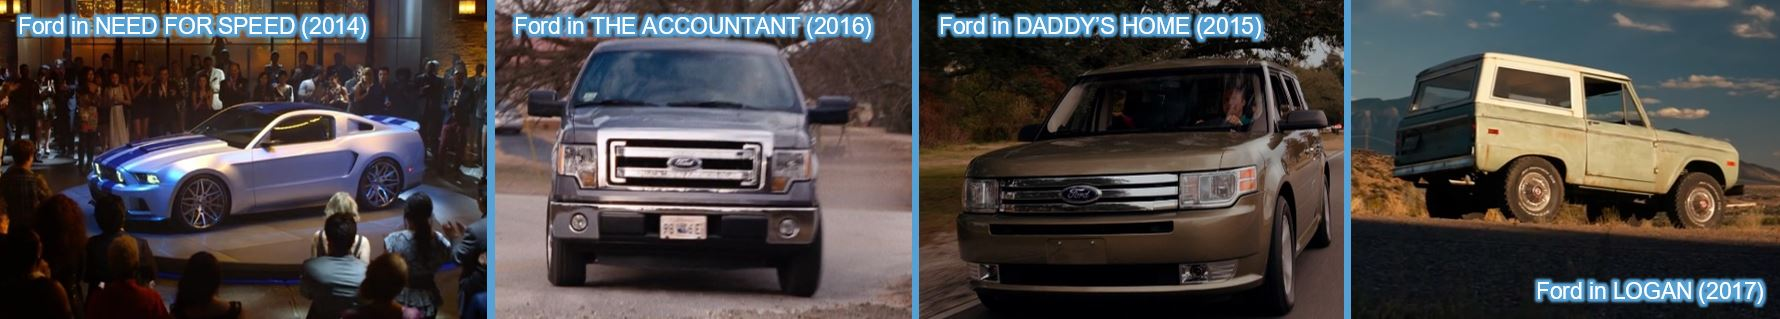 Ford - other